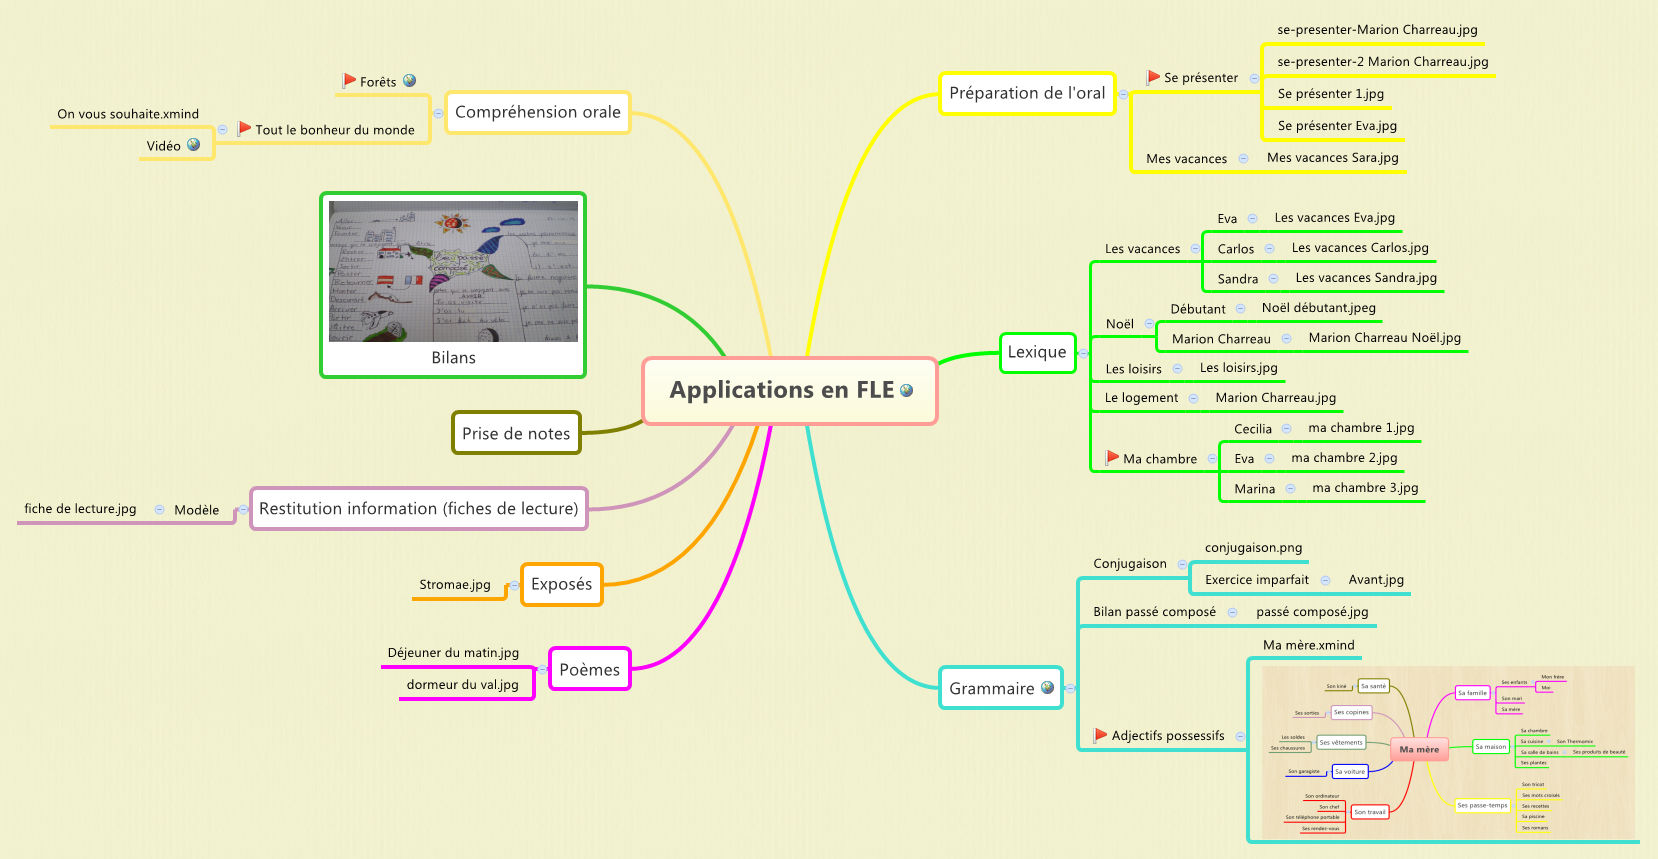 Applications en FLE